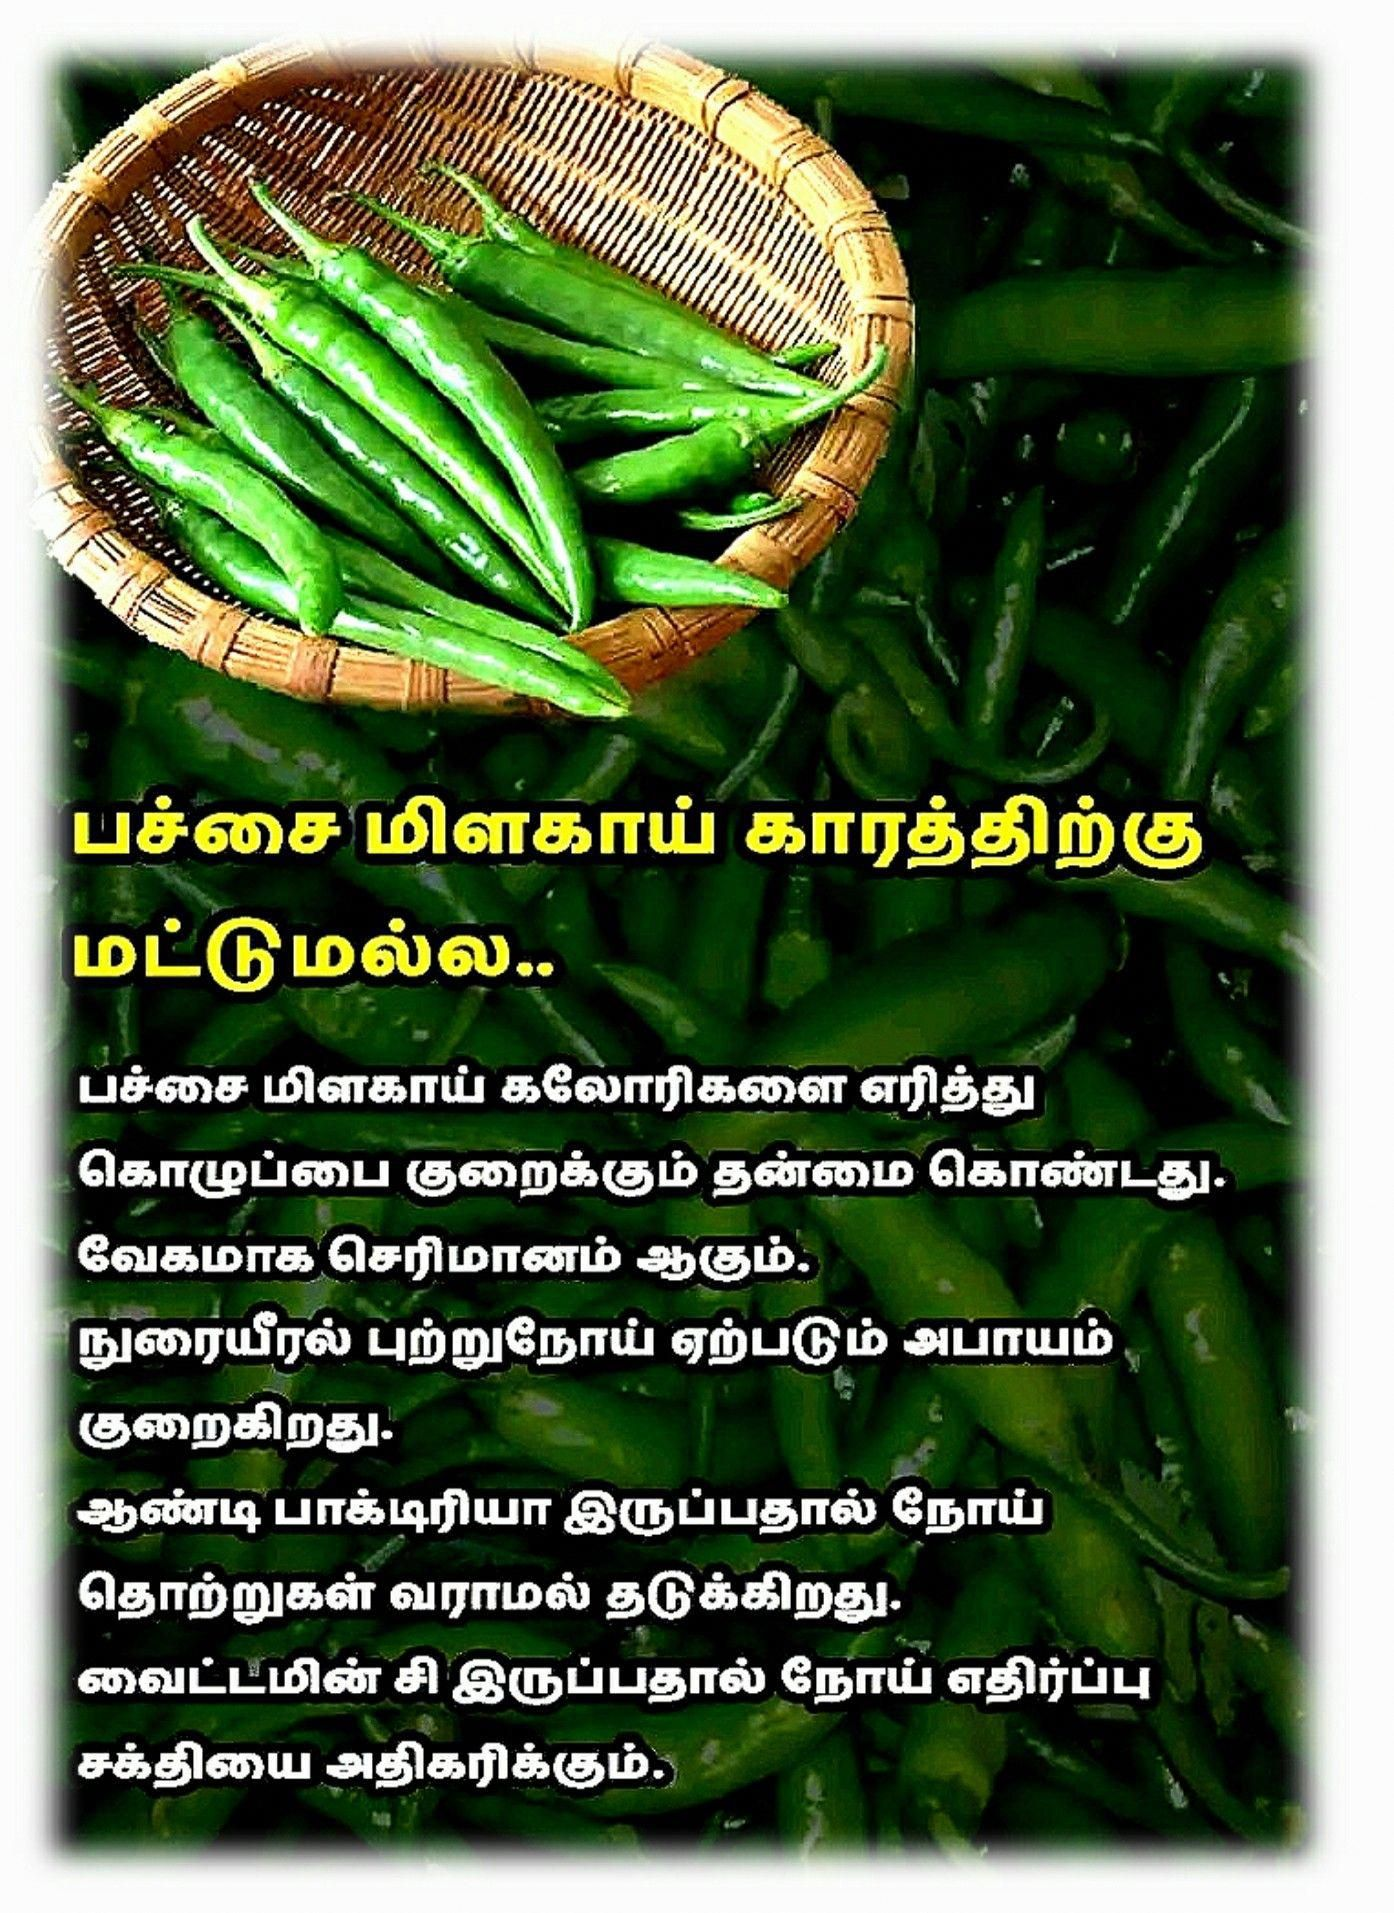 HealthyFoodTipsTamil Natural health tips, Nutrition